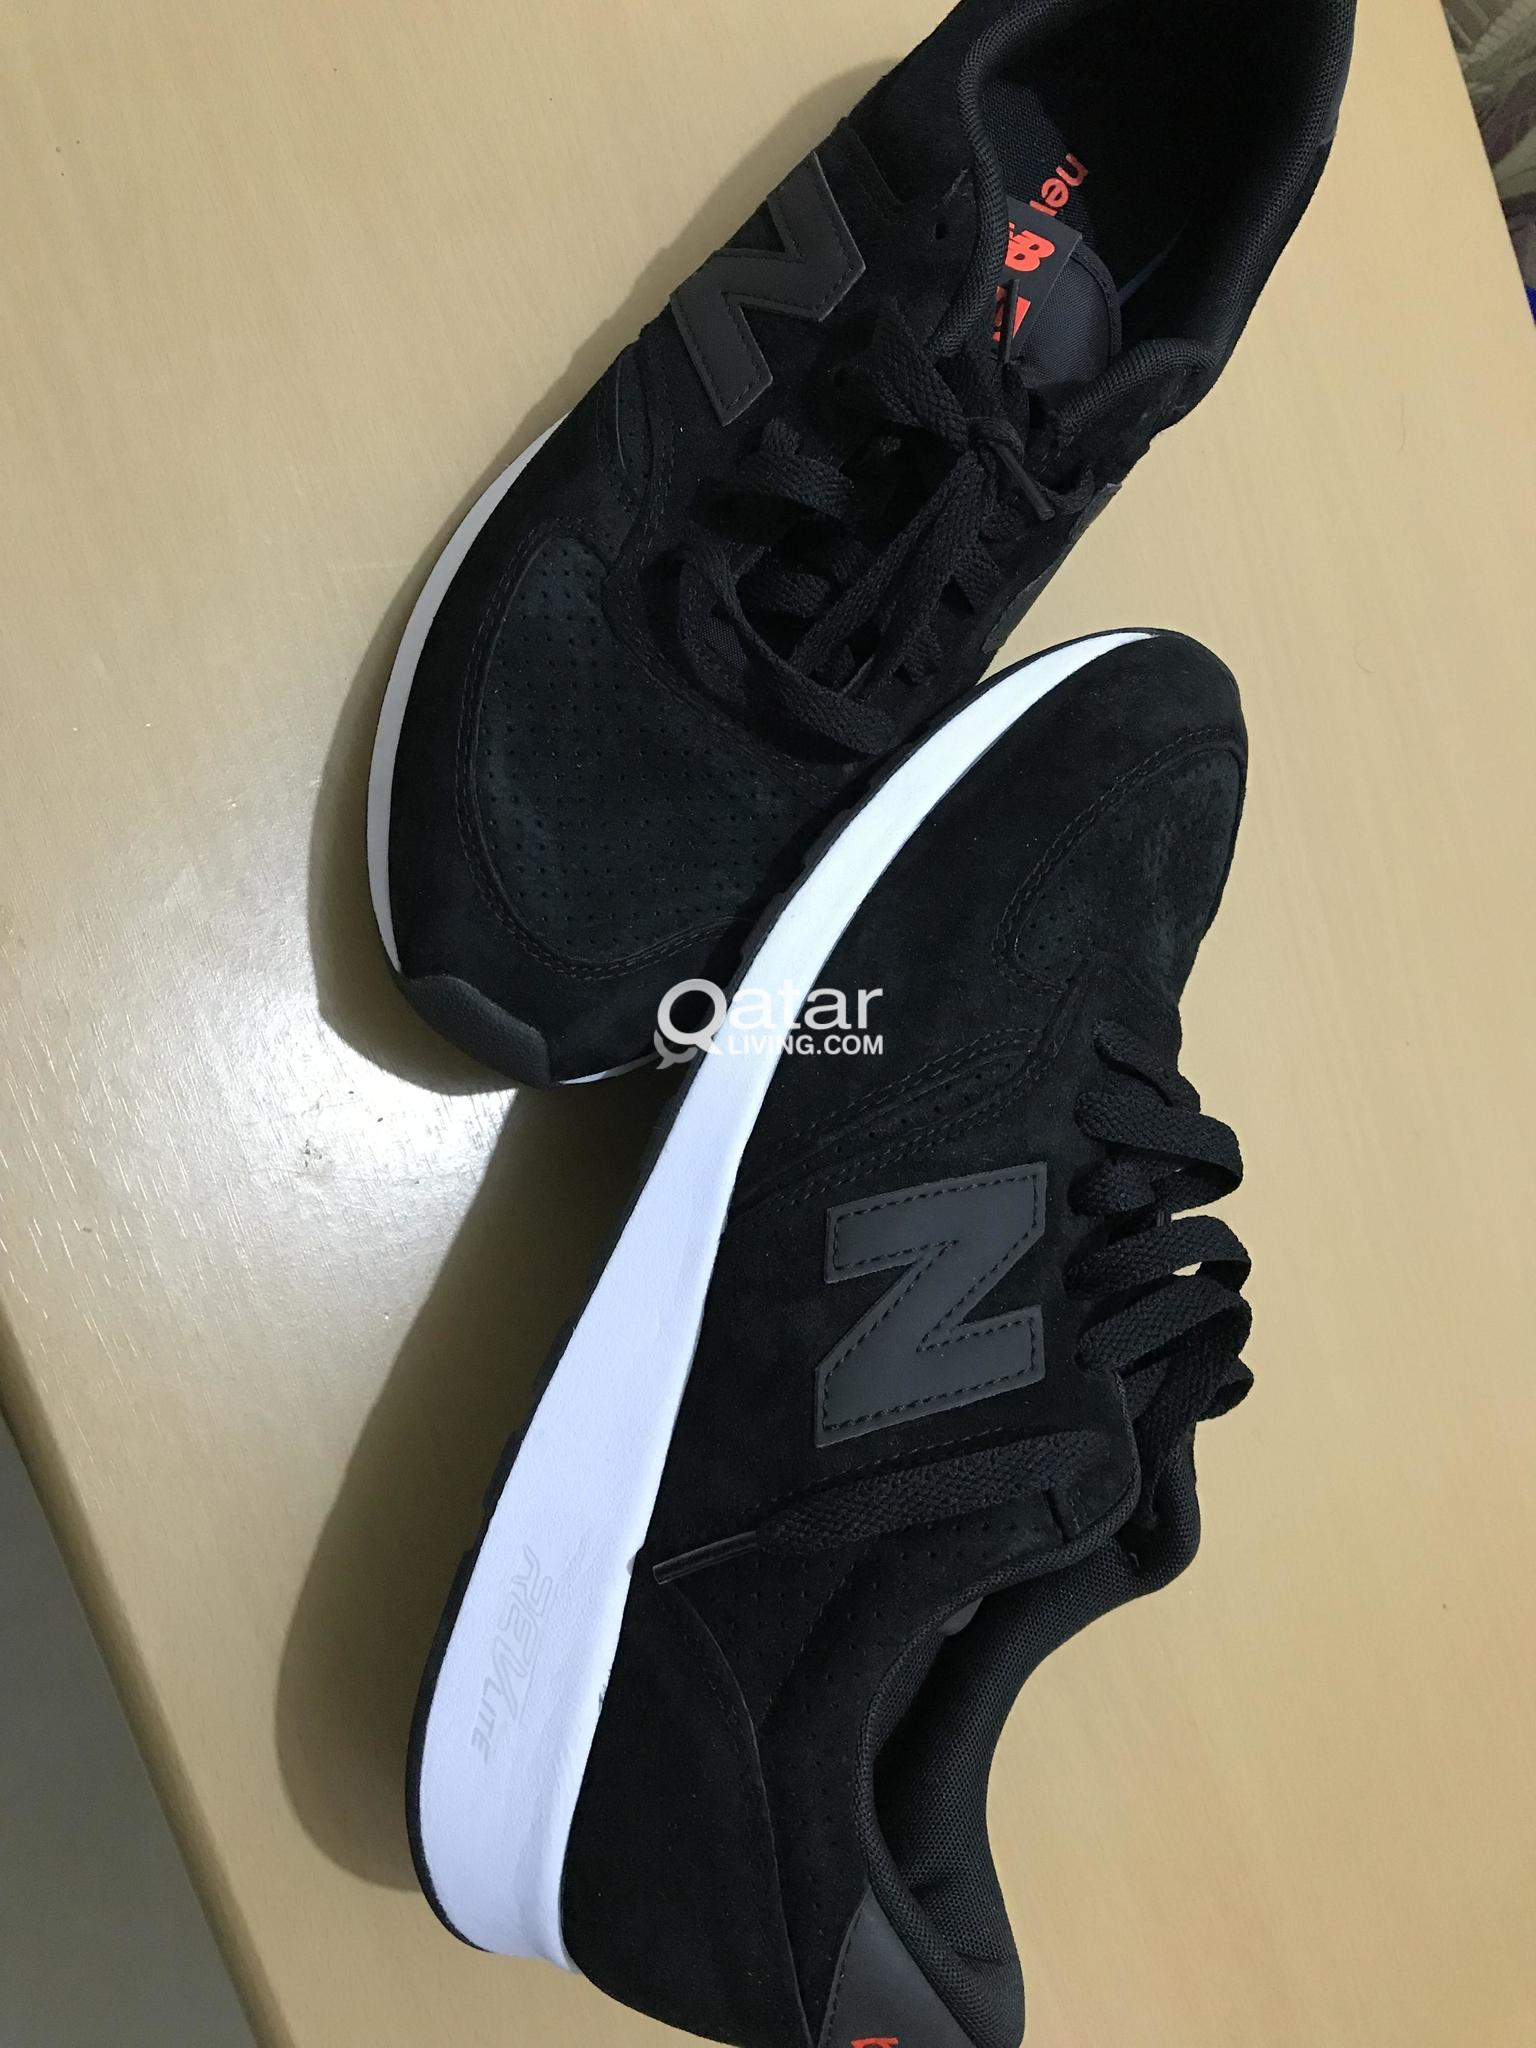 Unwanted gifts puma and new balance shoes  1d0ba29a3